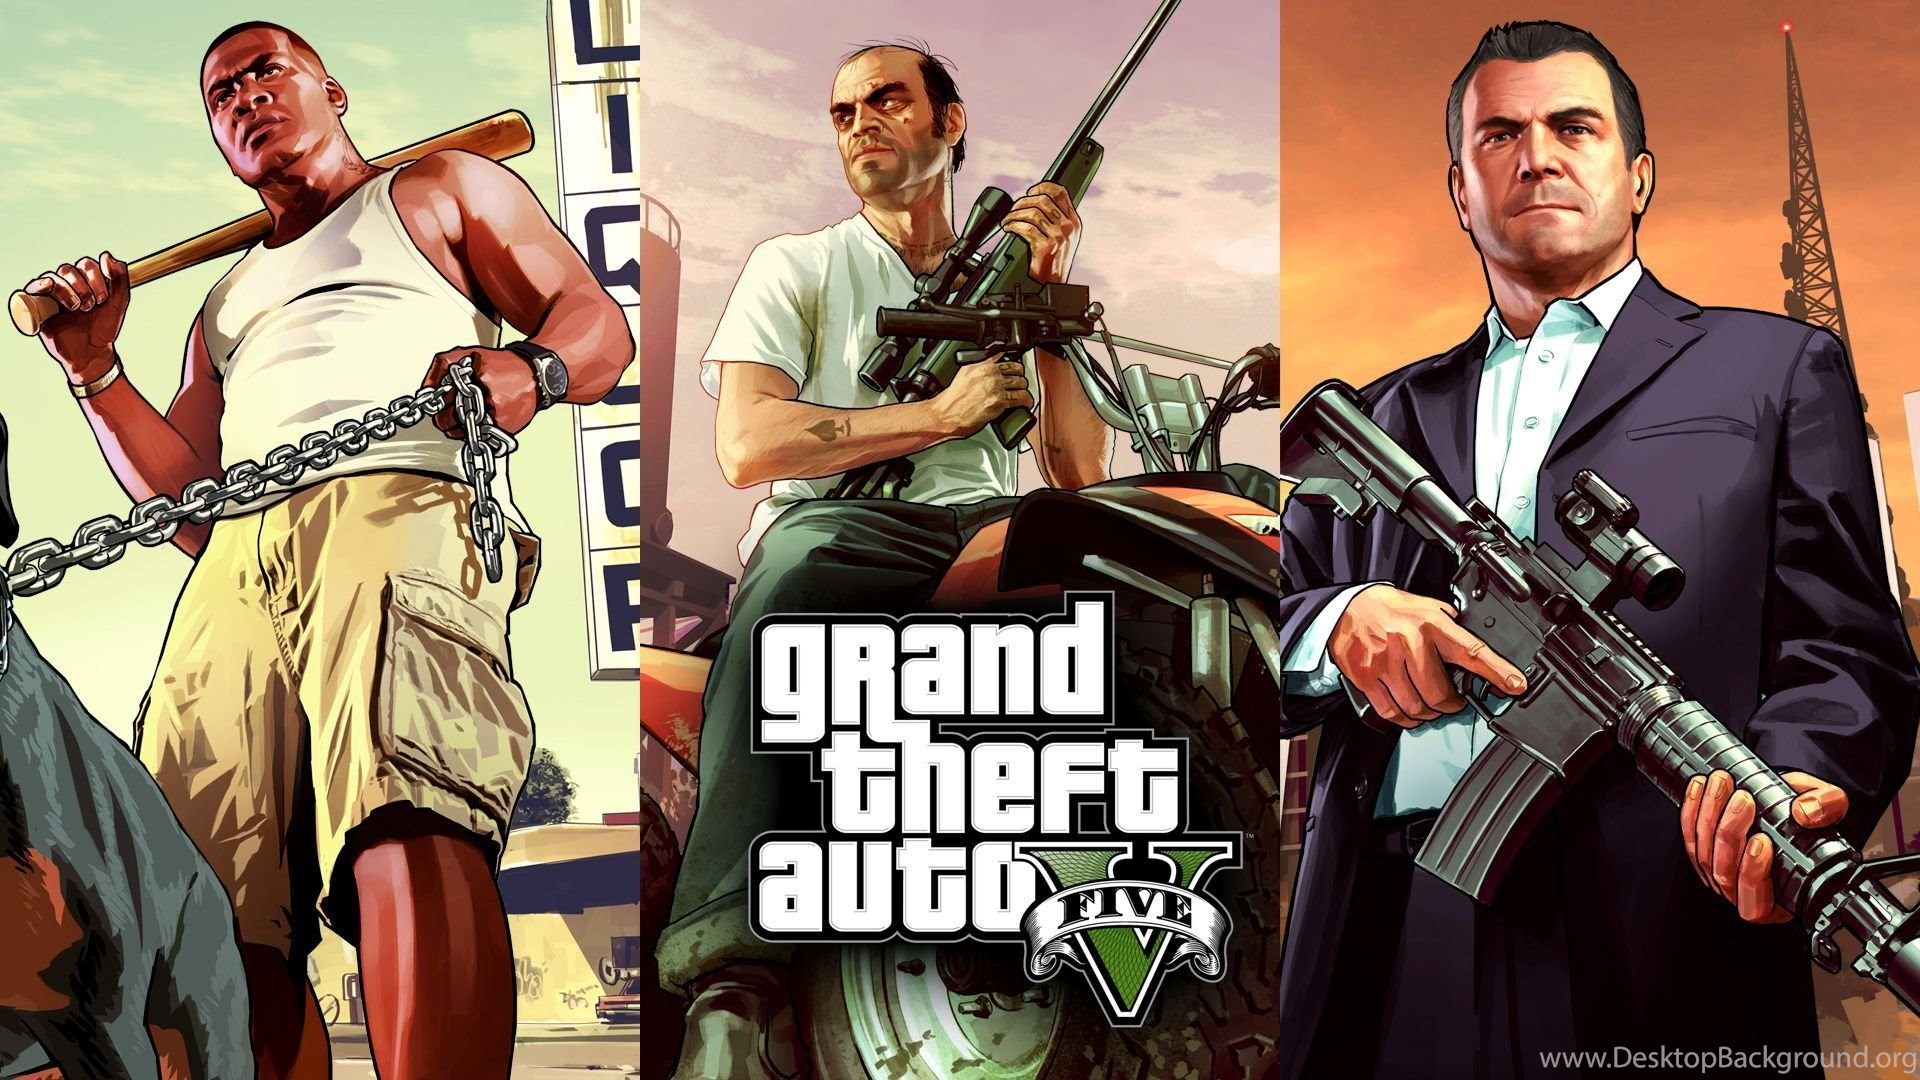 gta 5 wallpapers sharemotive desktop background